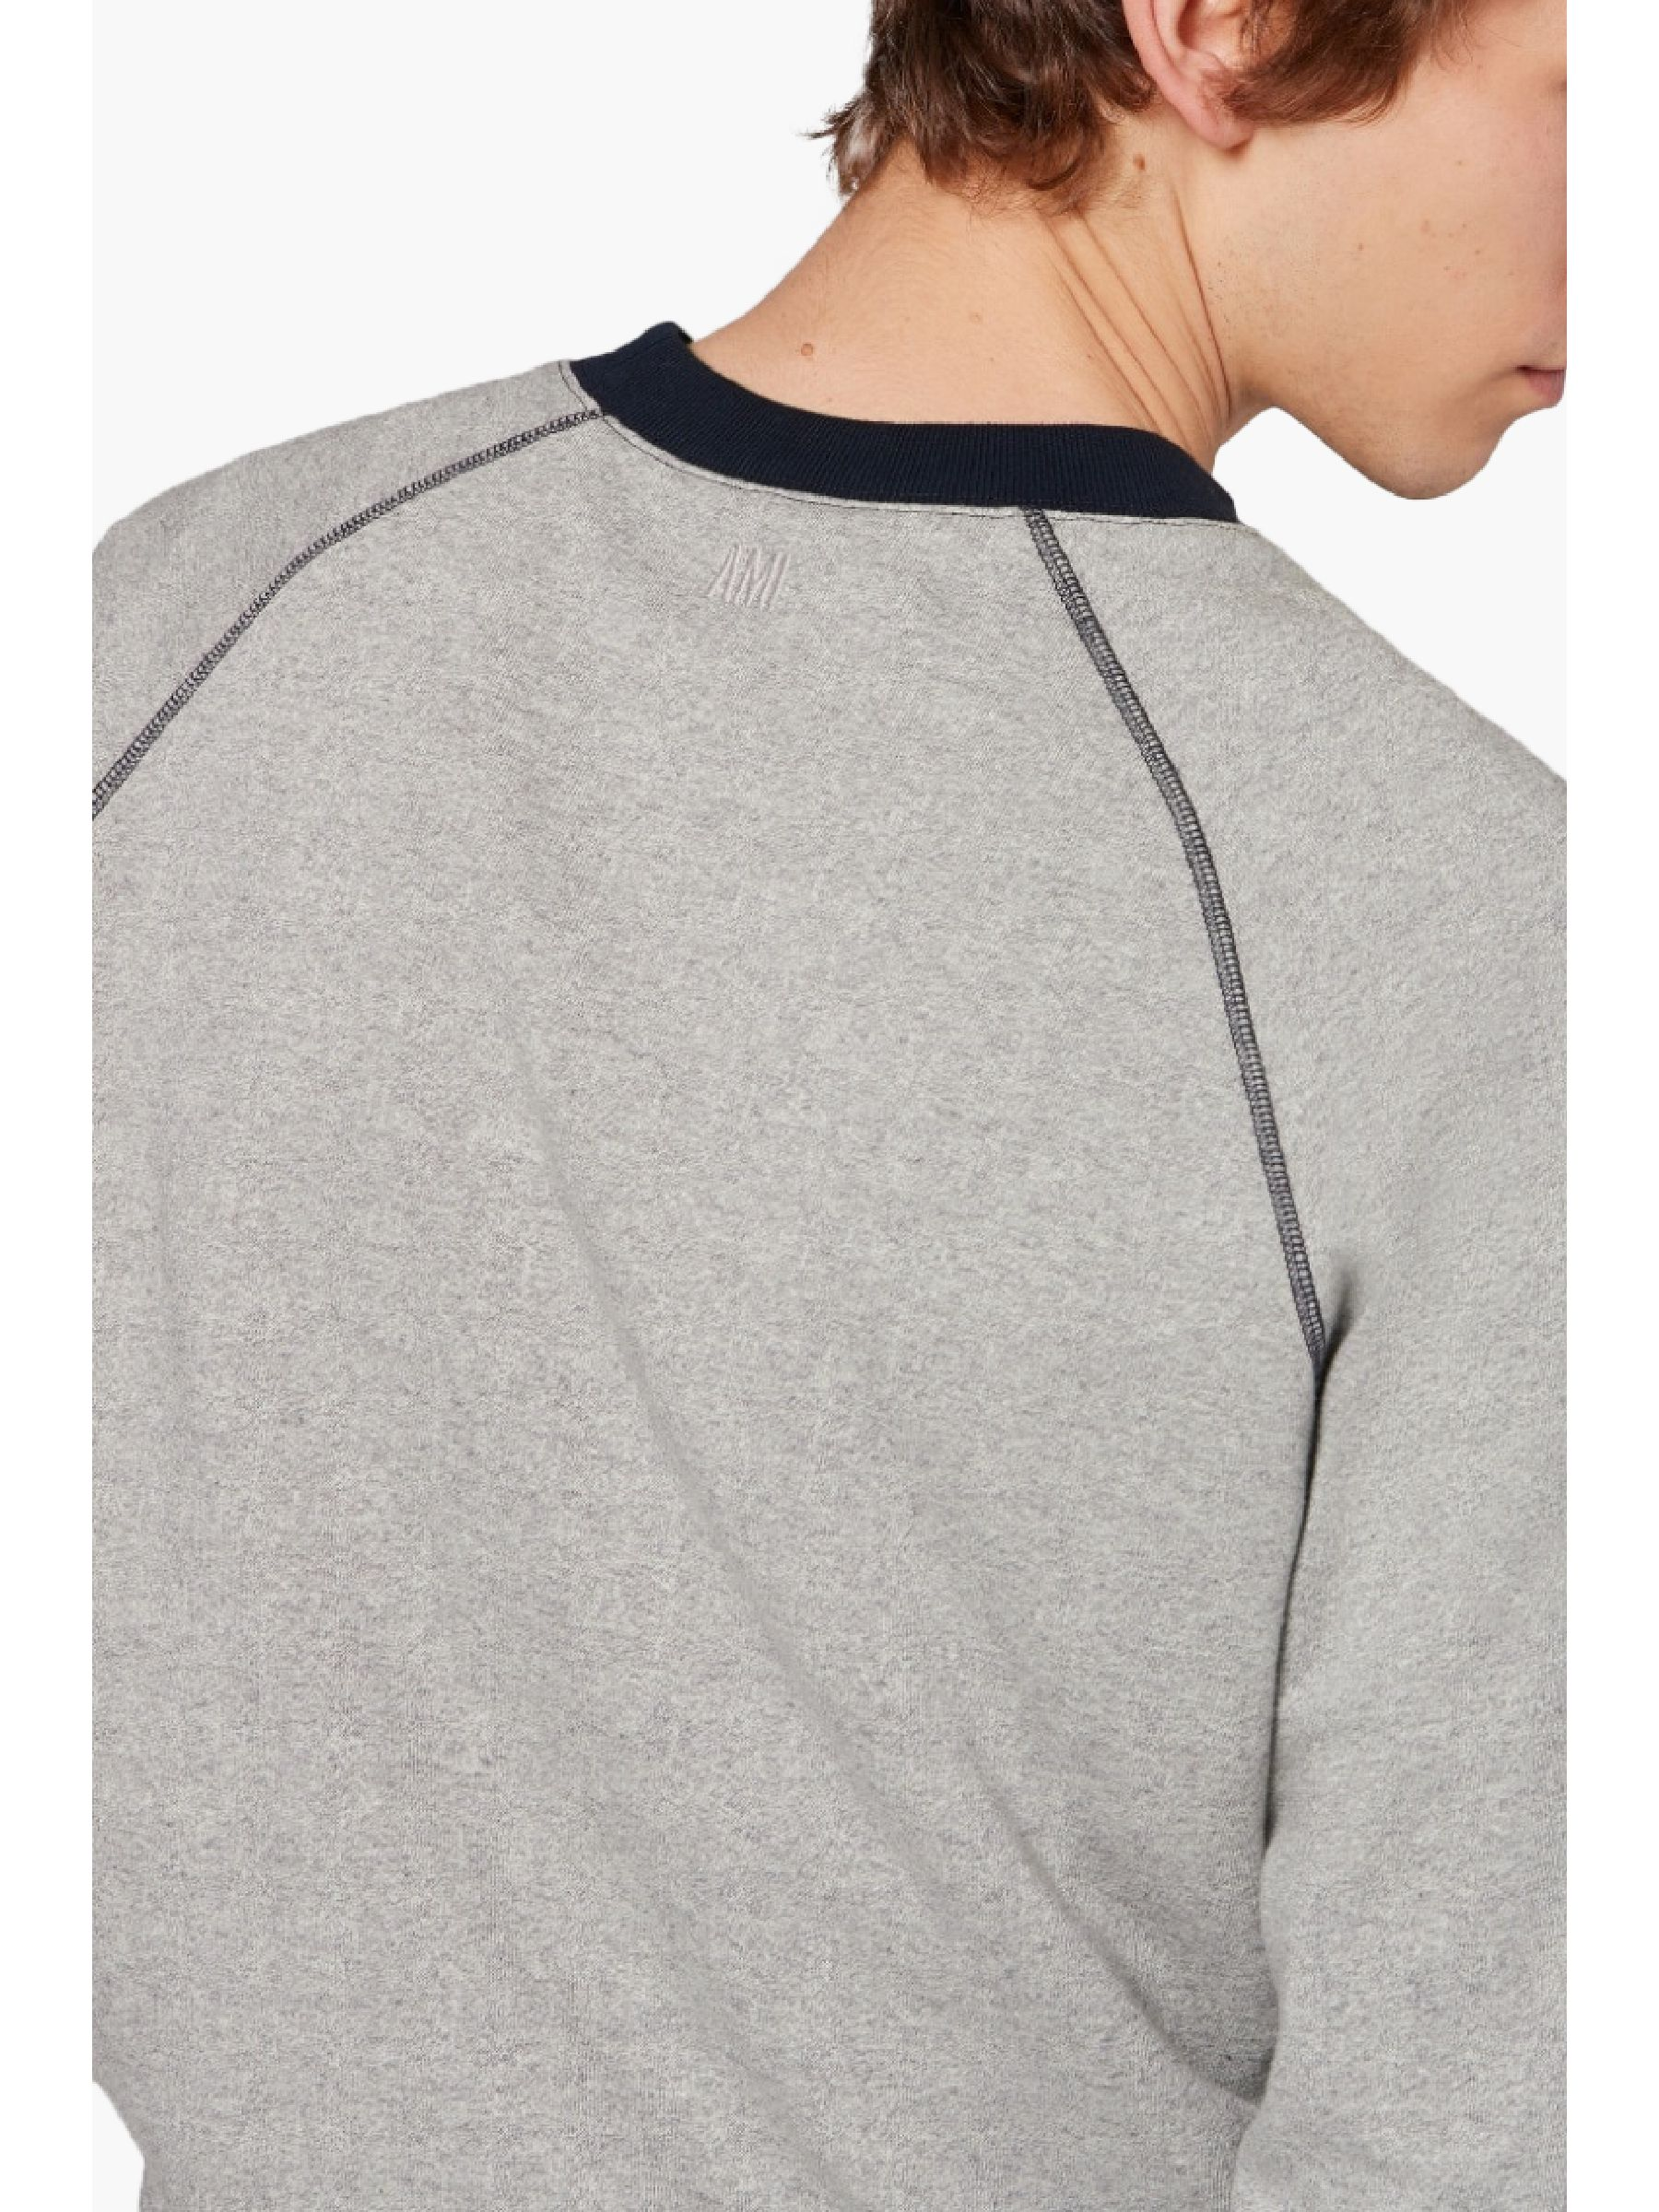 ami_paris_crewneck_bicolor_sweatshirt_with_ami_print_111437795_b.jpg